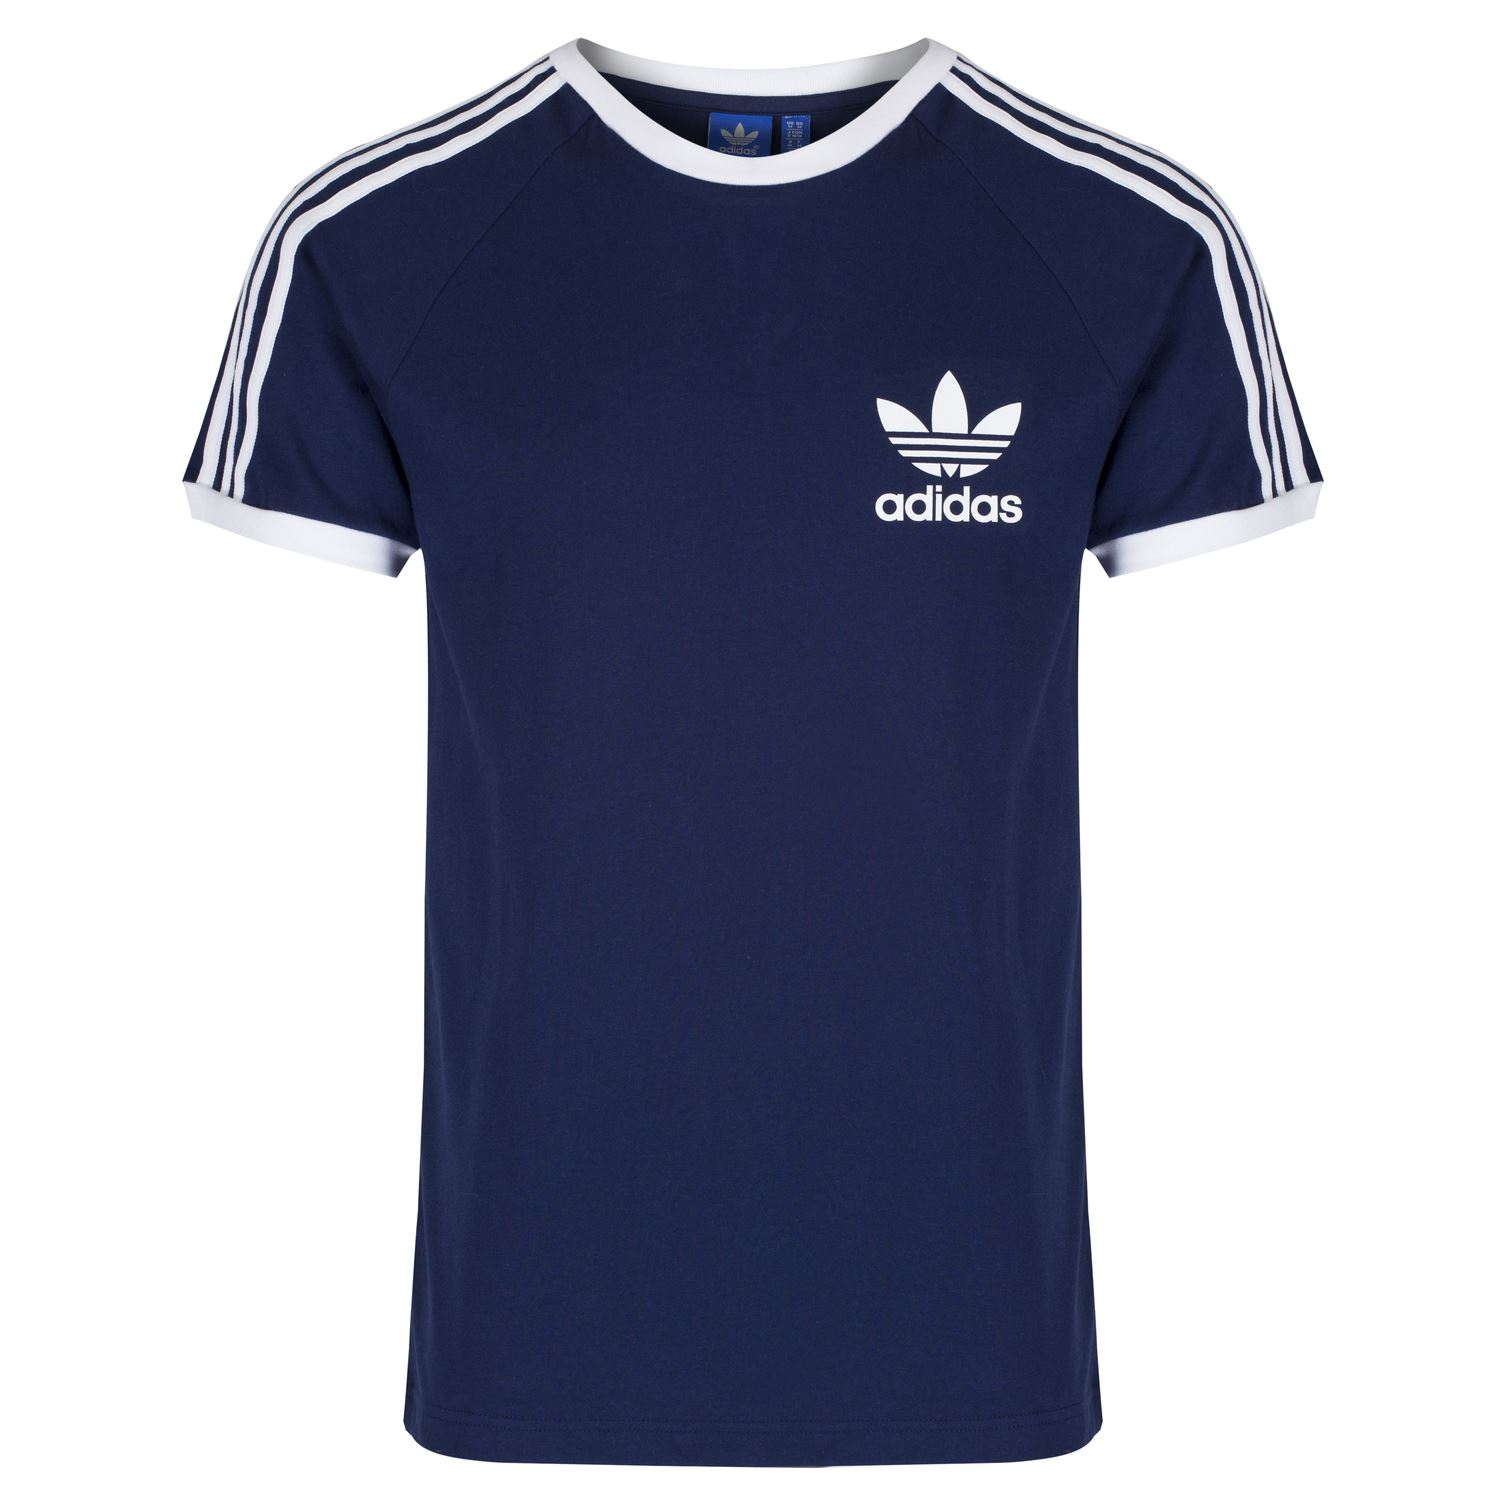 buy online new lower prices various design adidas ORIGINALS CALIFORNIA T SHIRT MEN'S CREW NECK TOP BLUE WHITE GREY NAVY